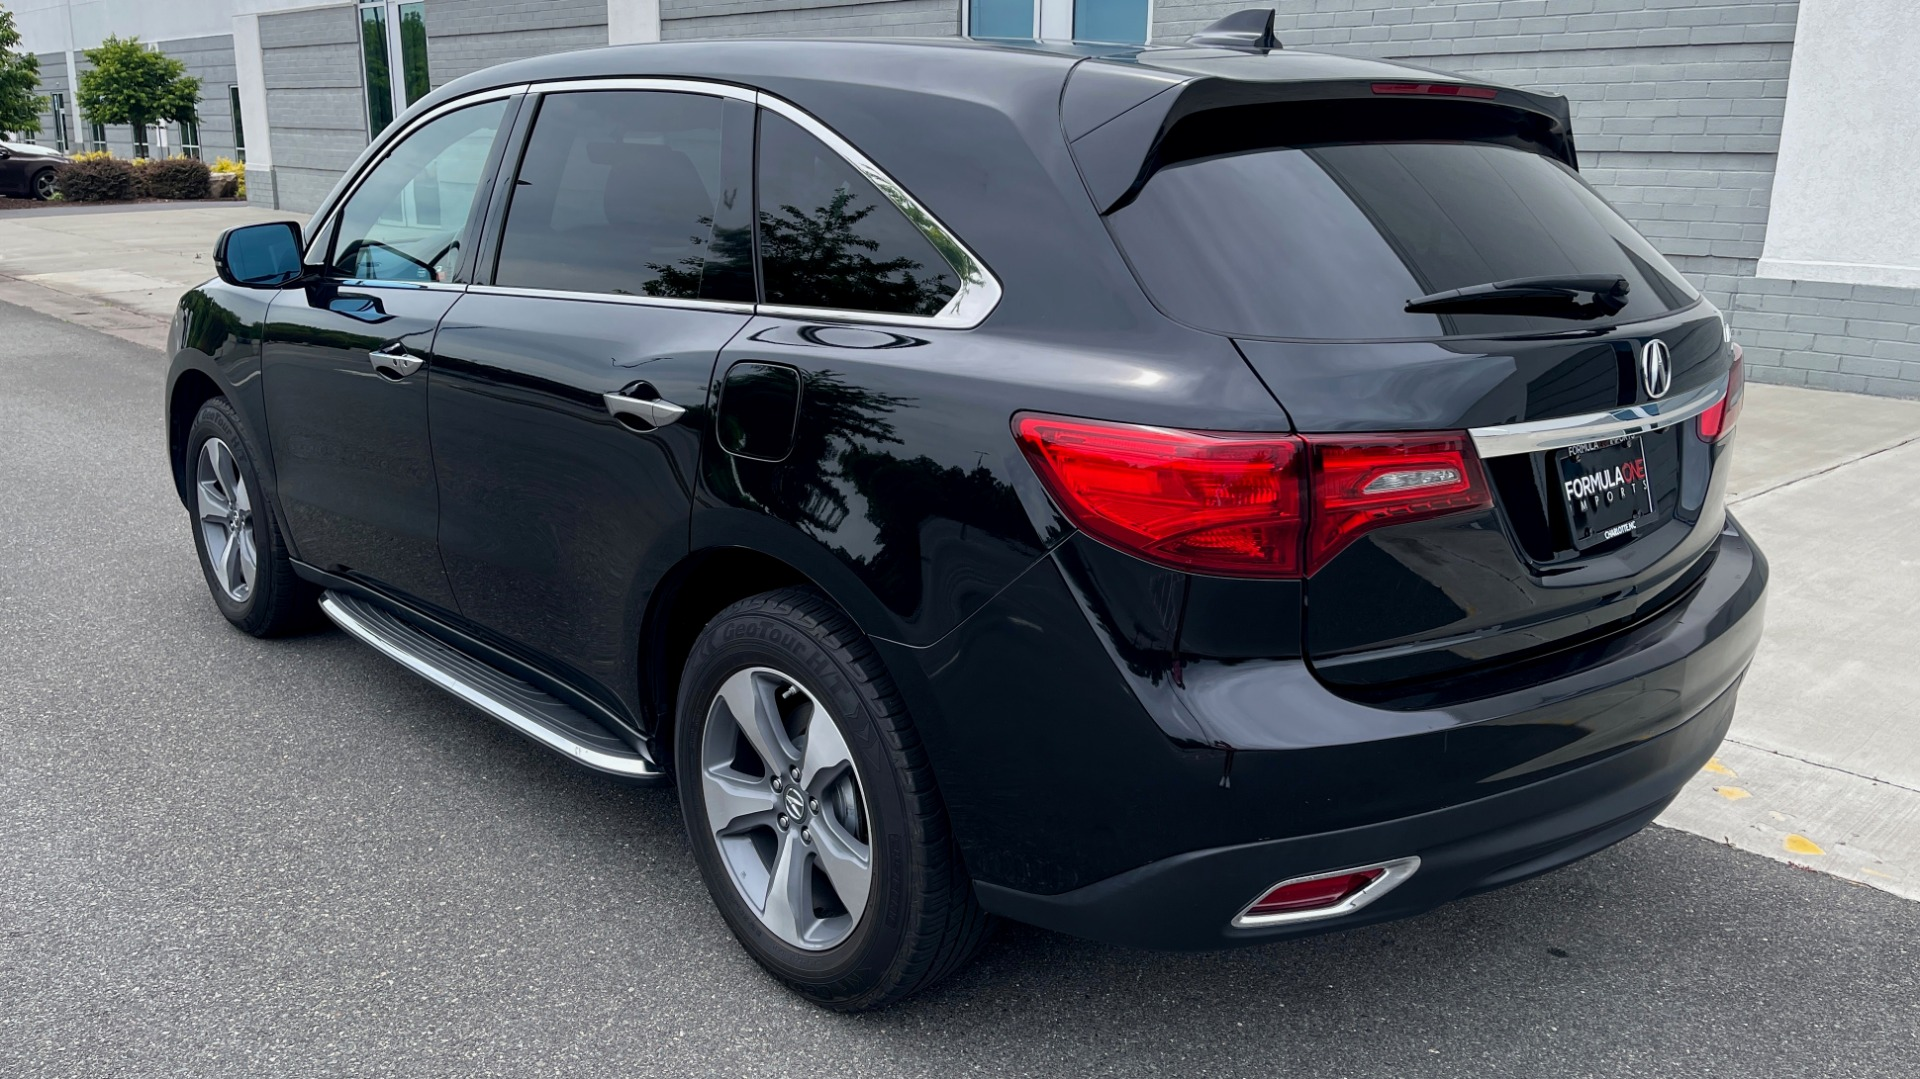 Used 2016 Acura MDX 3.5L V6 / AUTO / LEATHER / NAV / SUNROOF / 3-ROW / REARVIEW for sale $21,900 at Formula Imports in Charlotte NC 28227 5